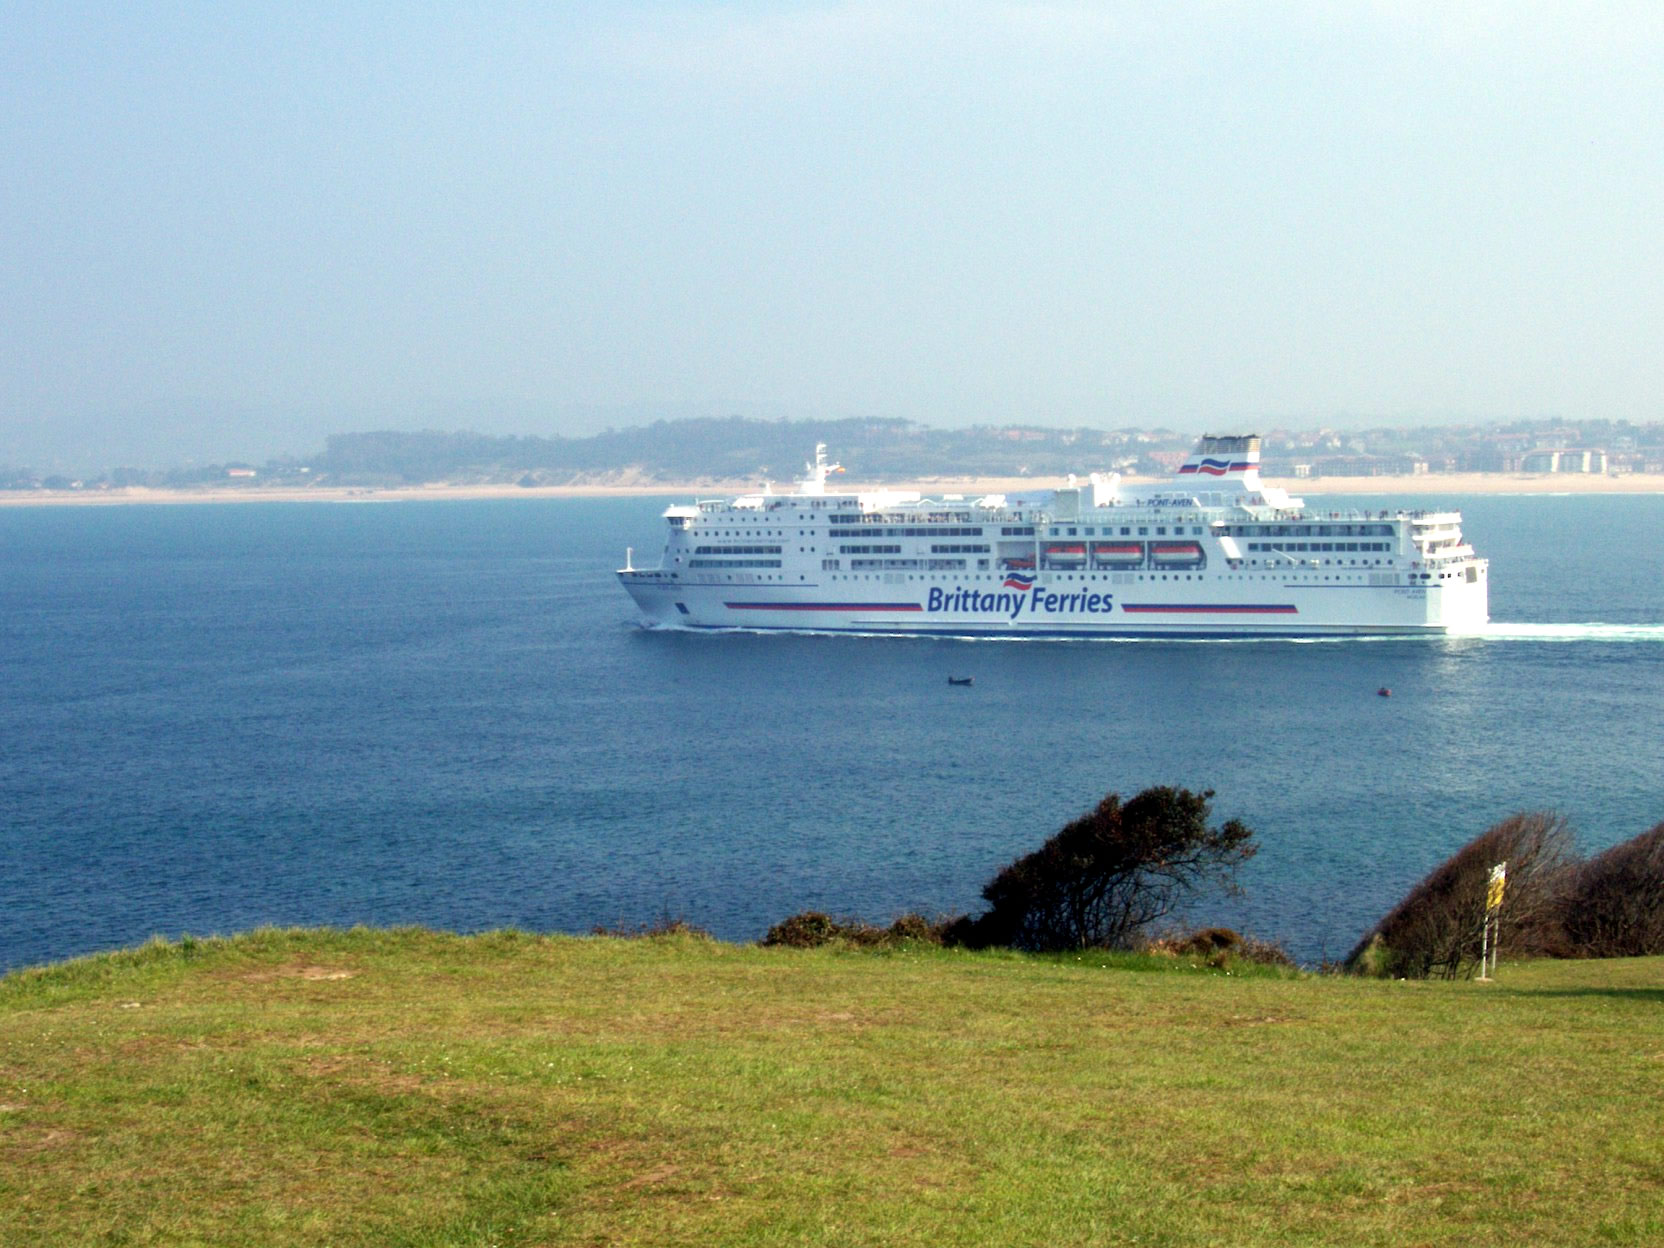 Brittany Ferries' MV Pont-Aven off the coast of Santander